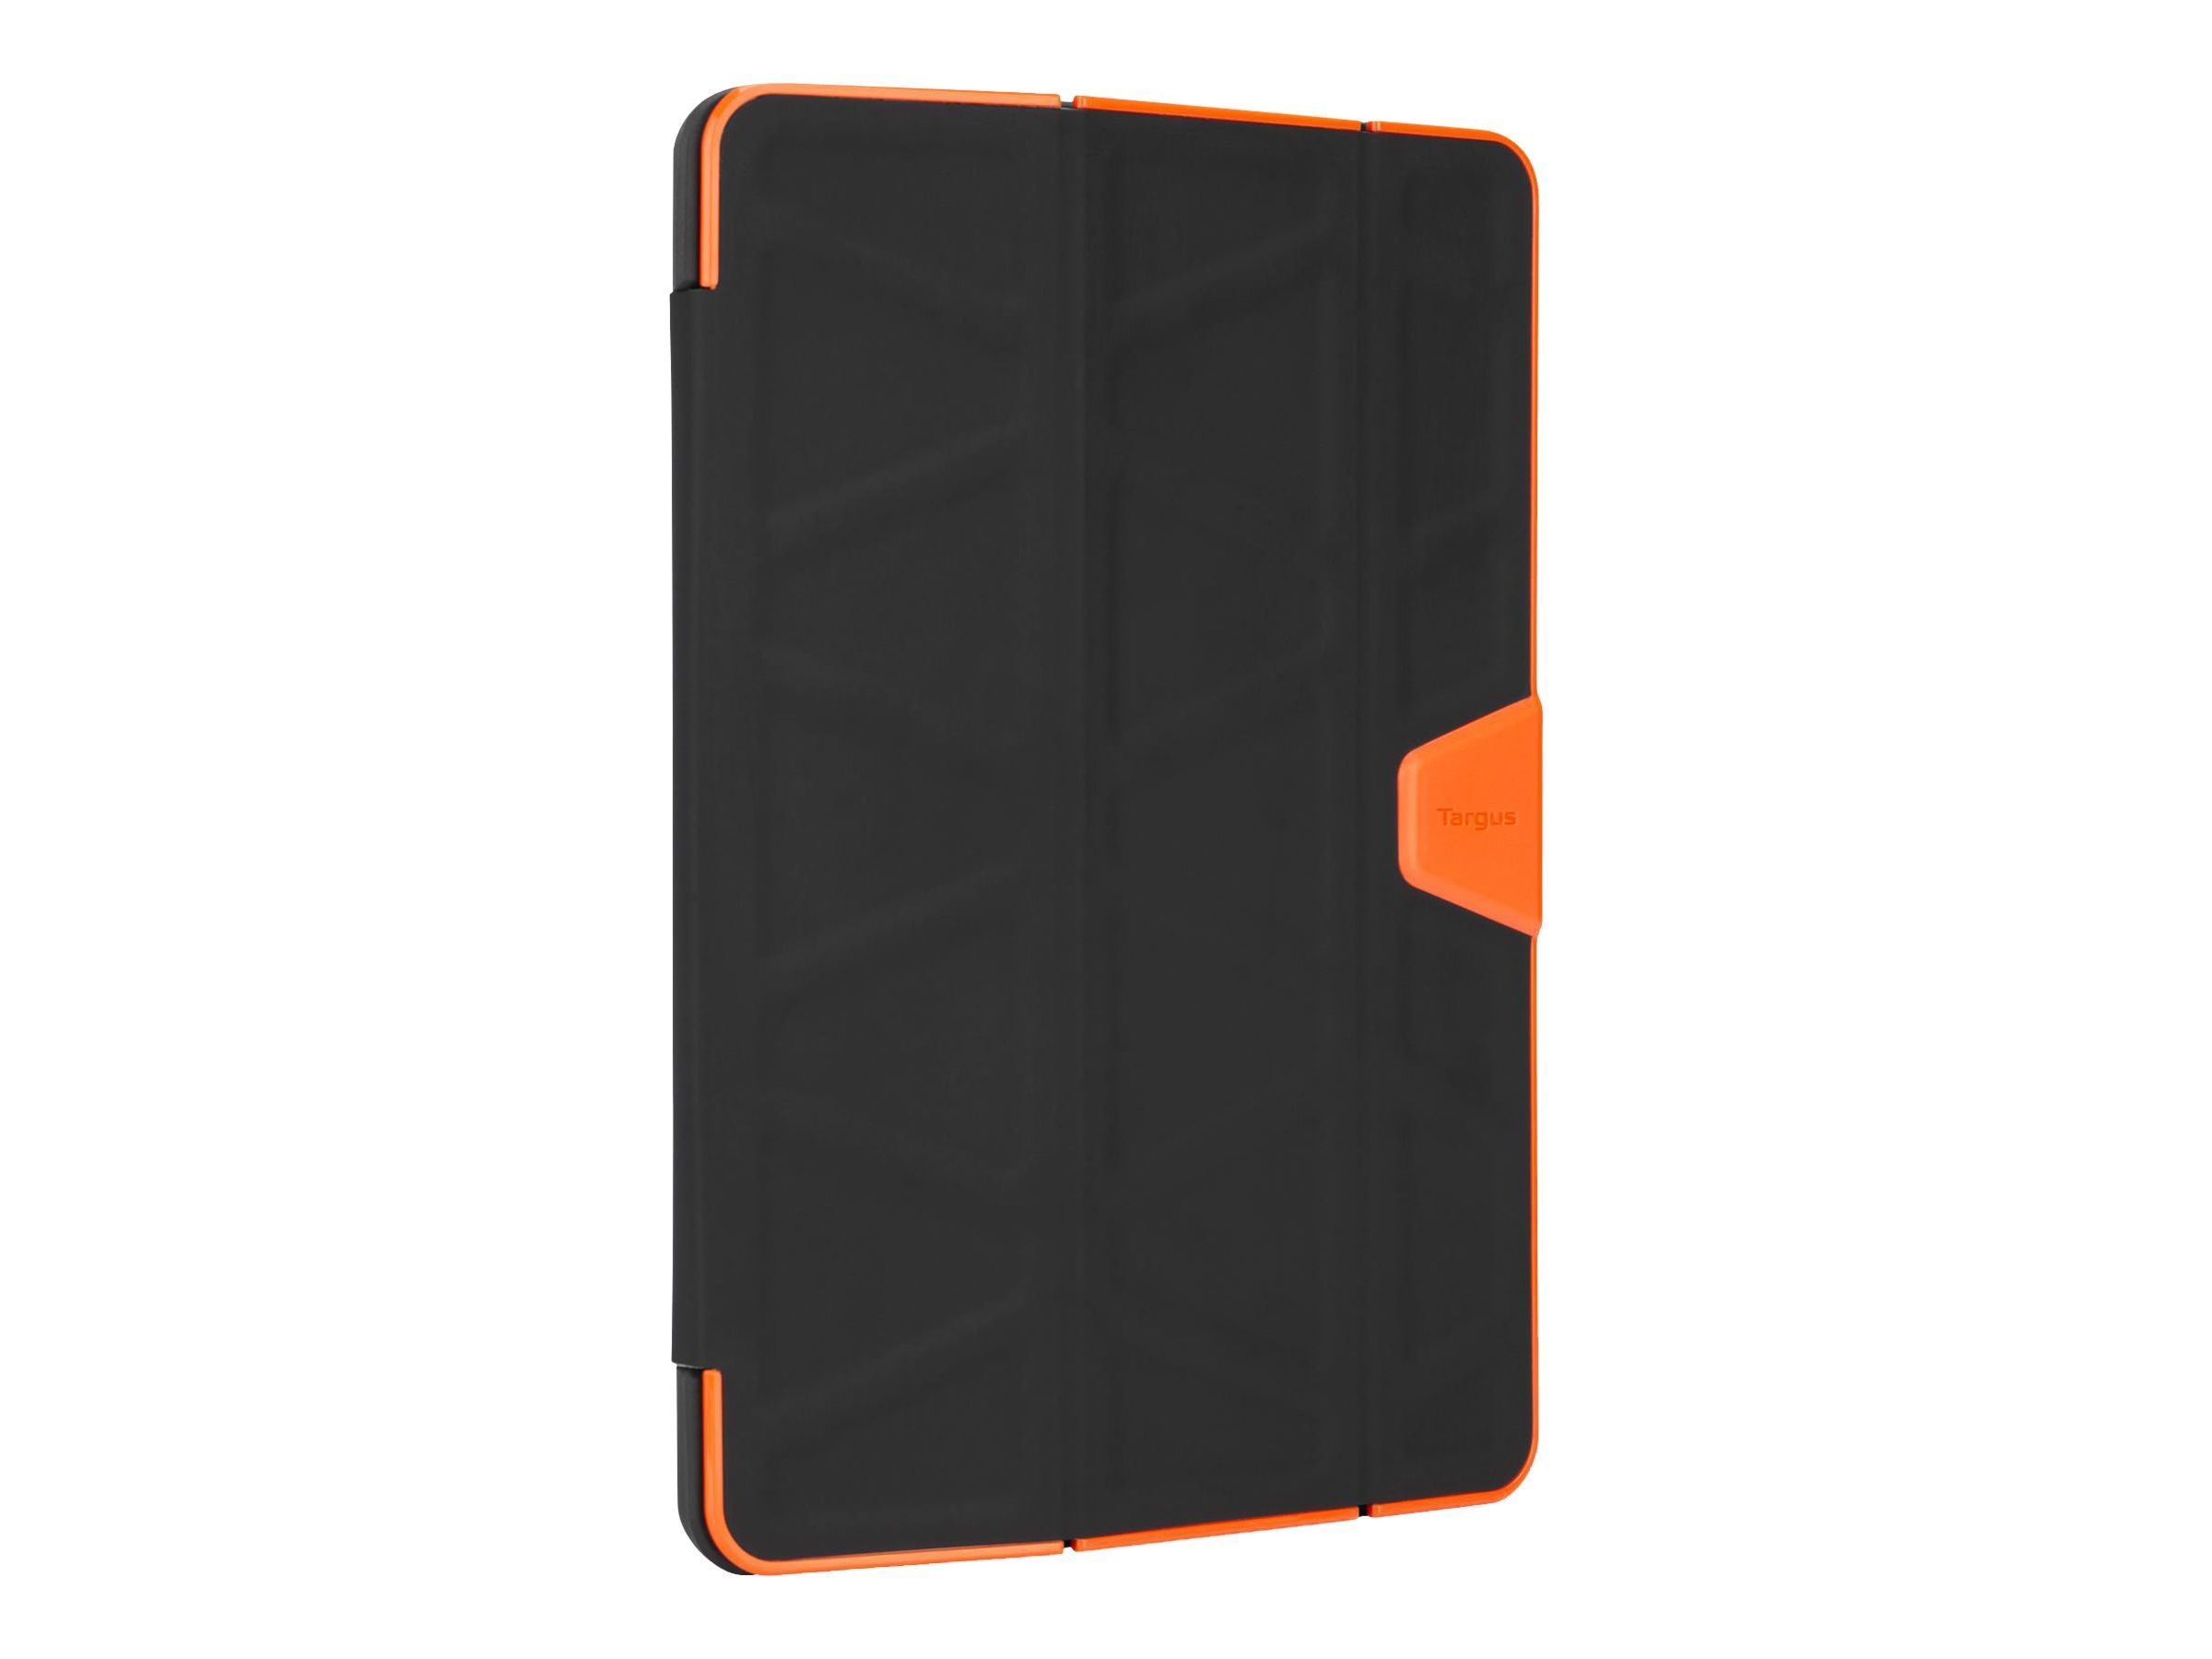 Targus 3D Protection for iPad Air 2, Black Red Edge, THZ522US, 25113087, Carrying Cases - Tablets & eReaders